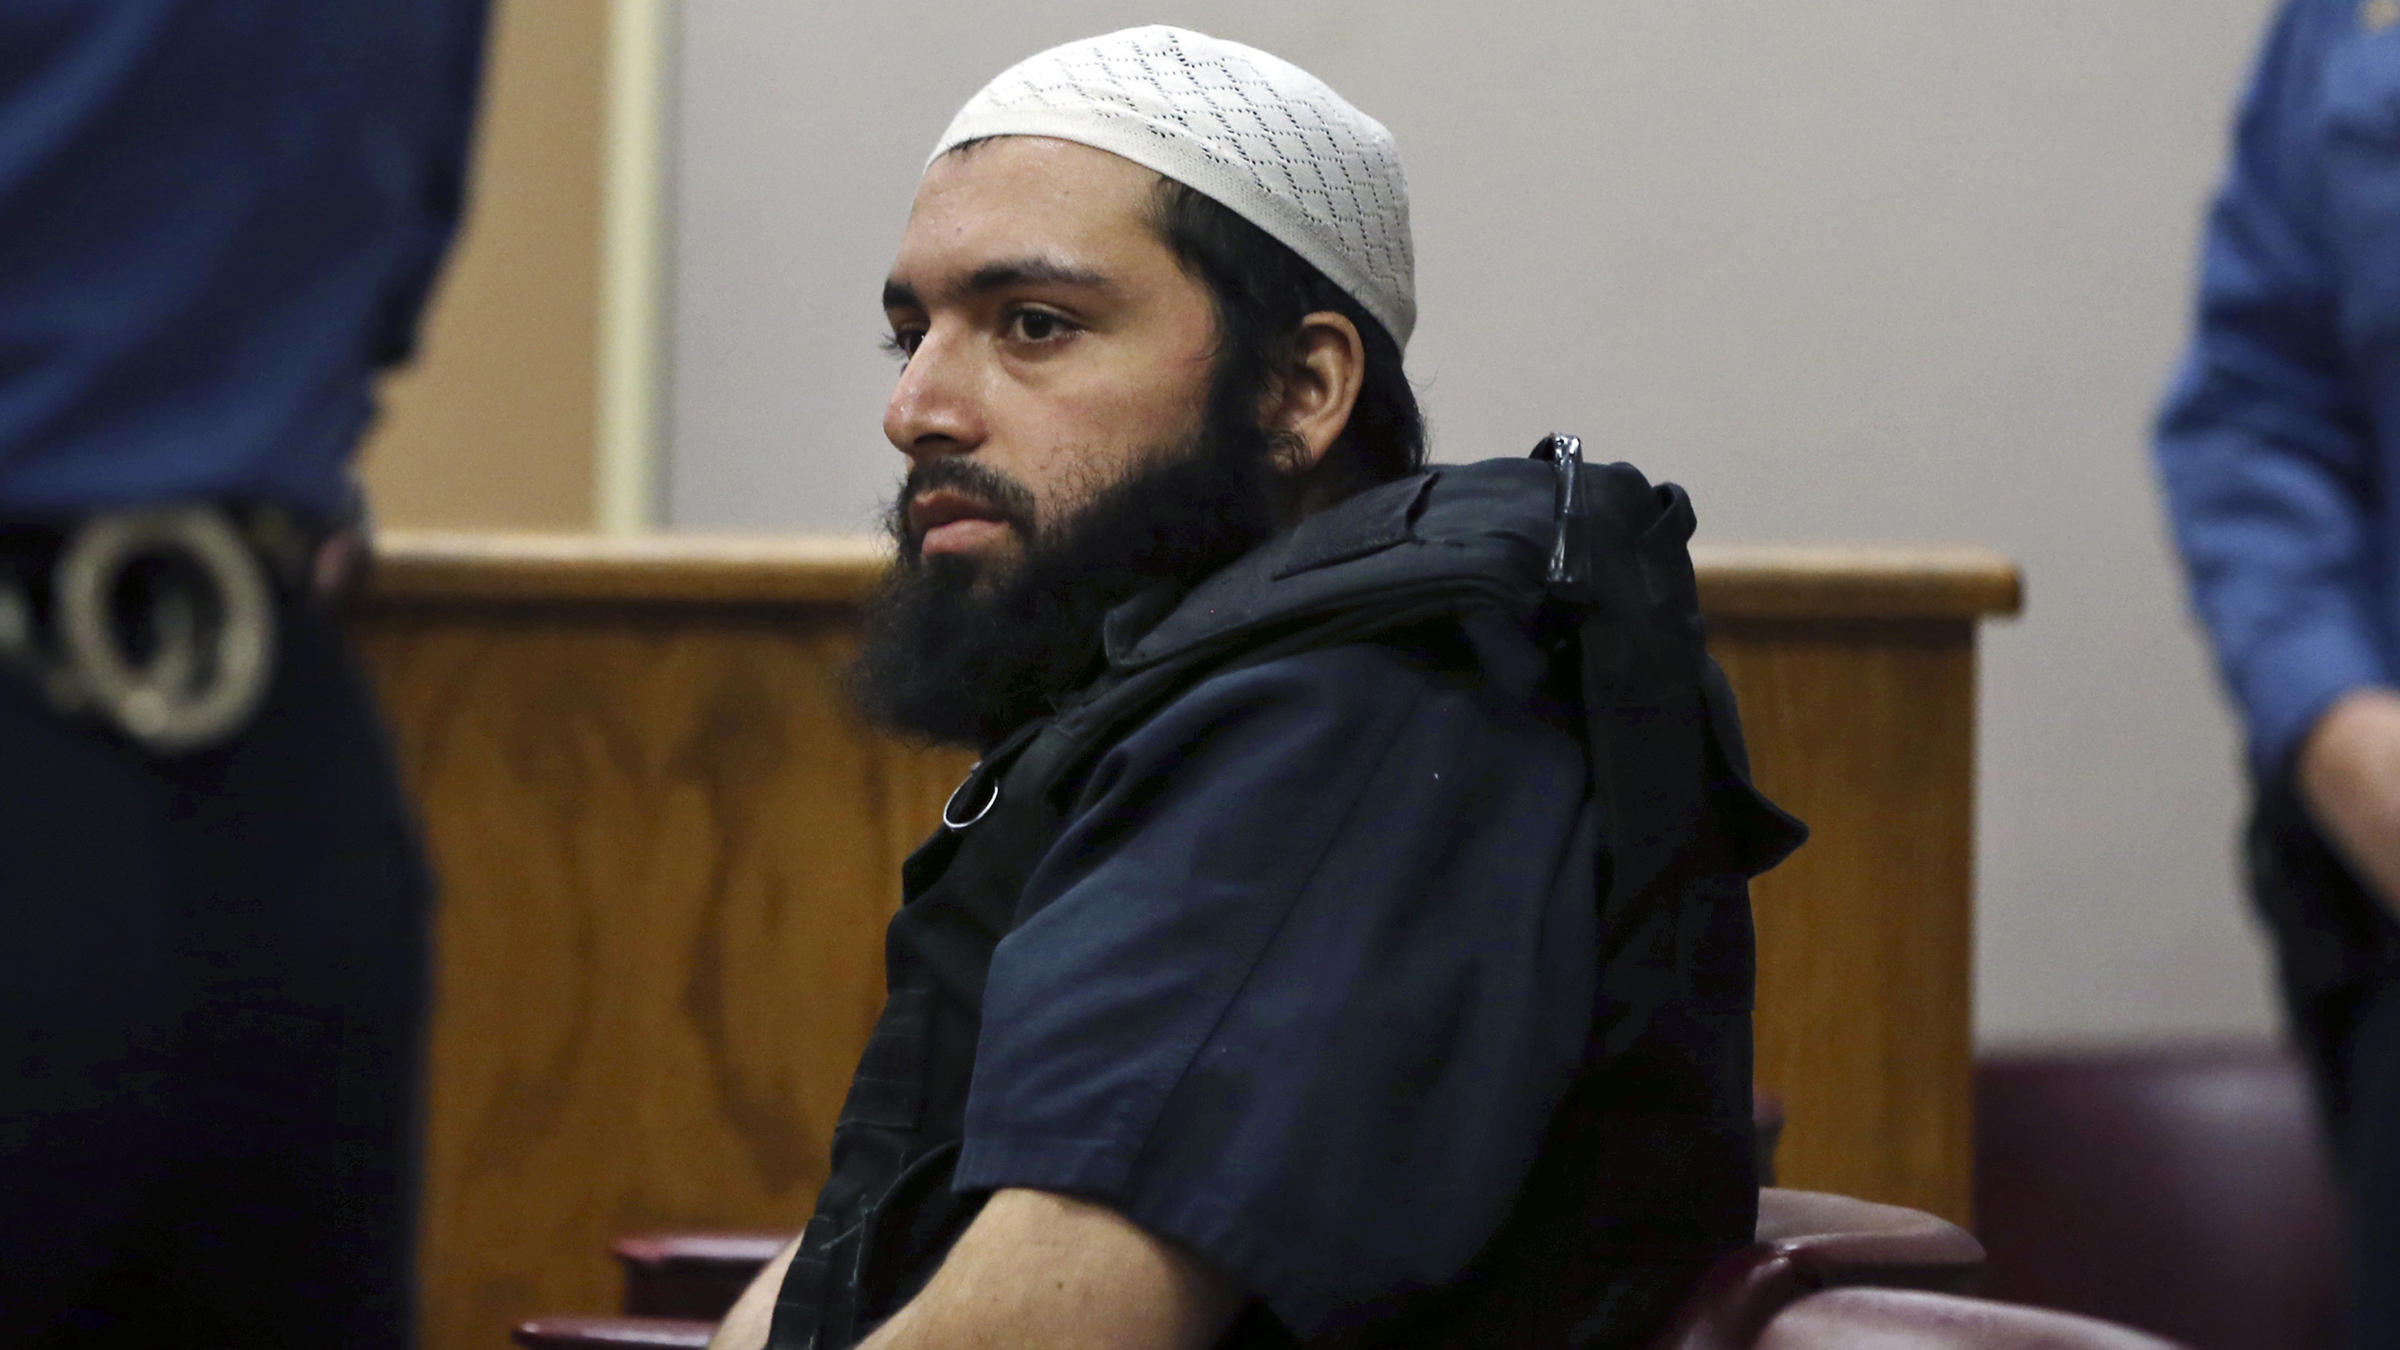 Man convicted in NYC bombings that hurt 30